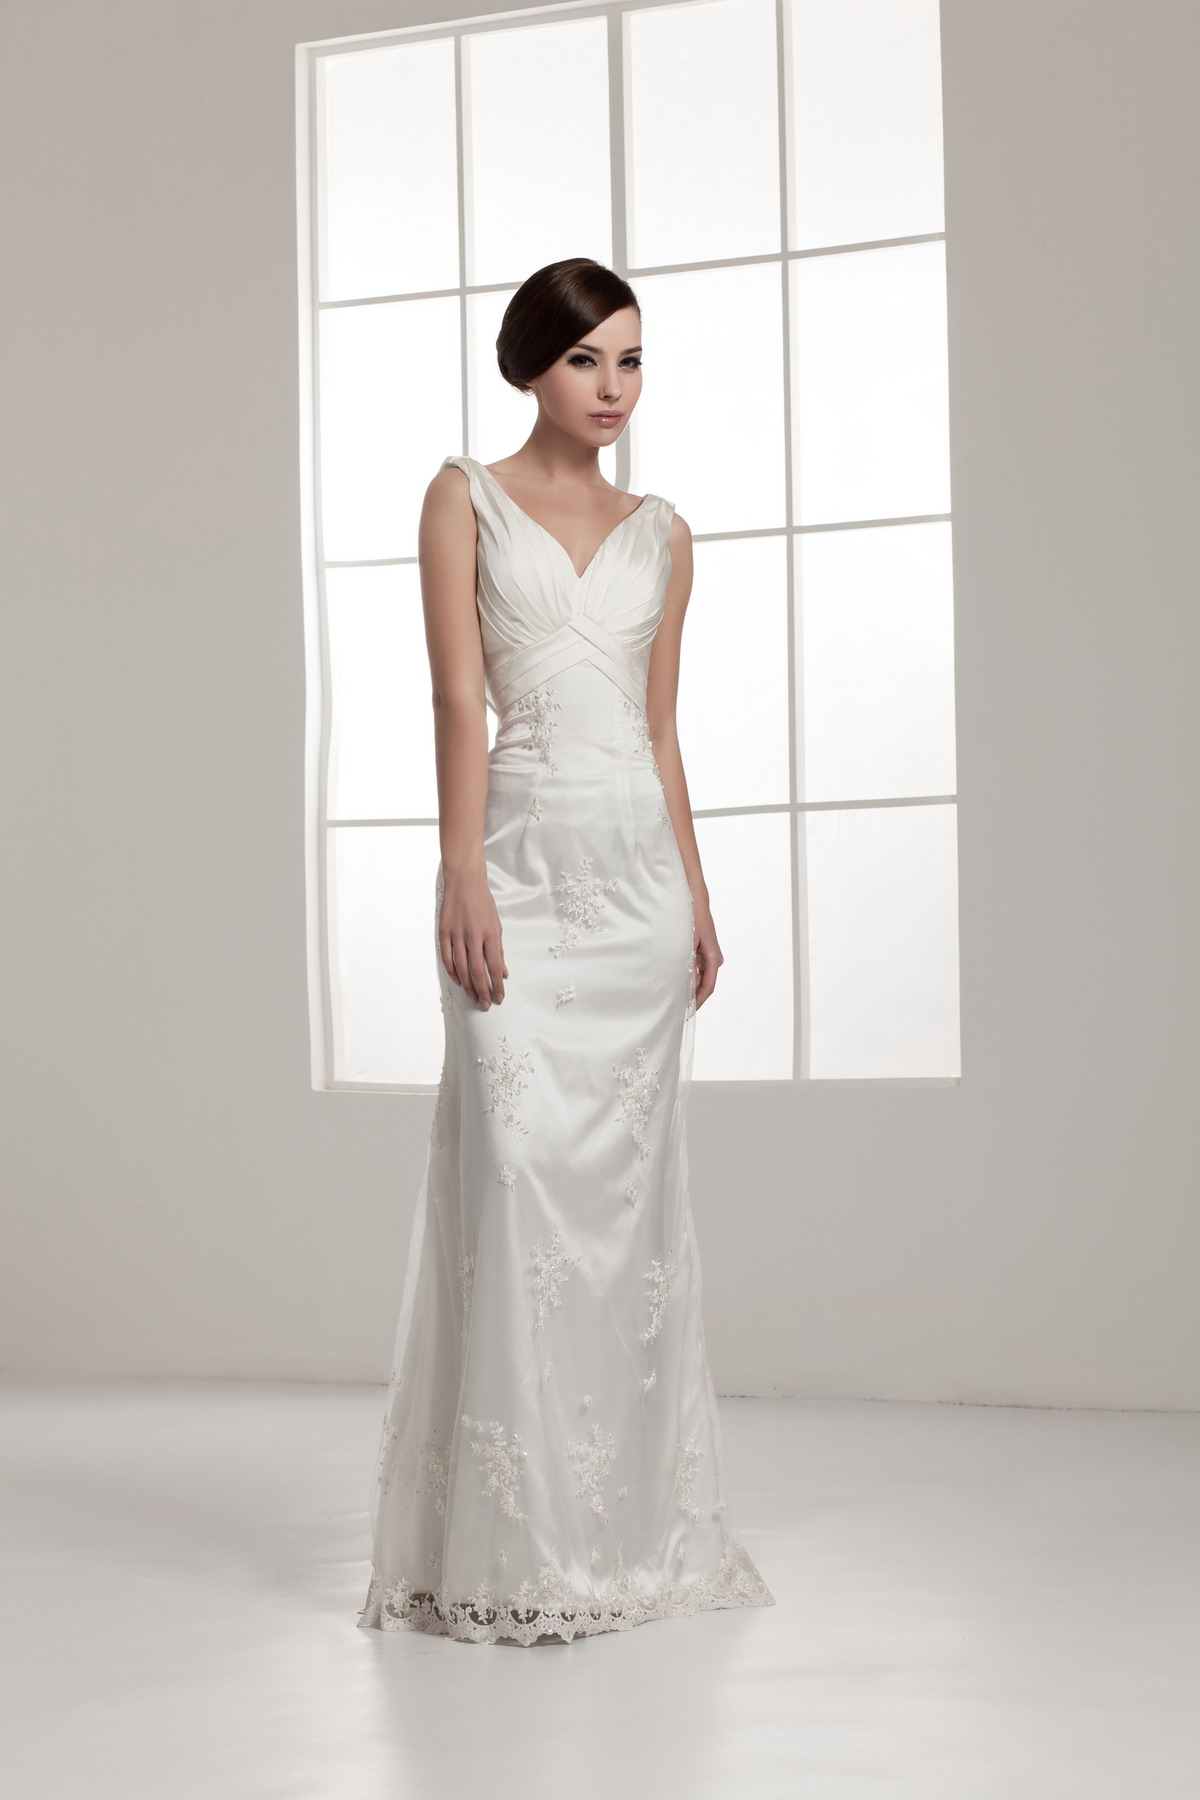 Images of Wedding Dresses For 200 - Reikian